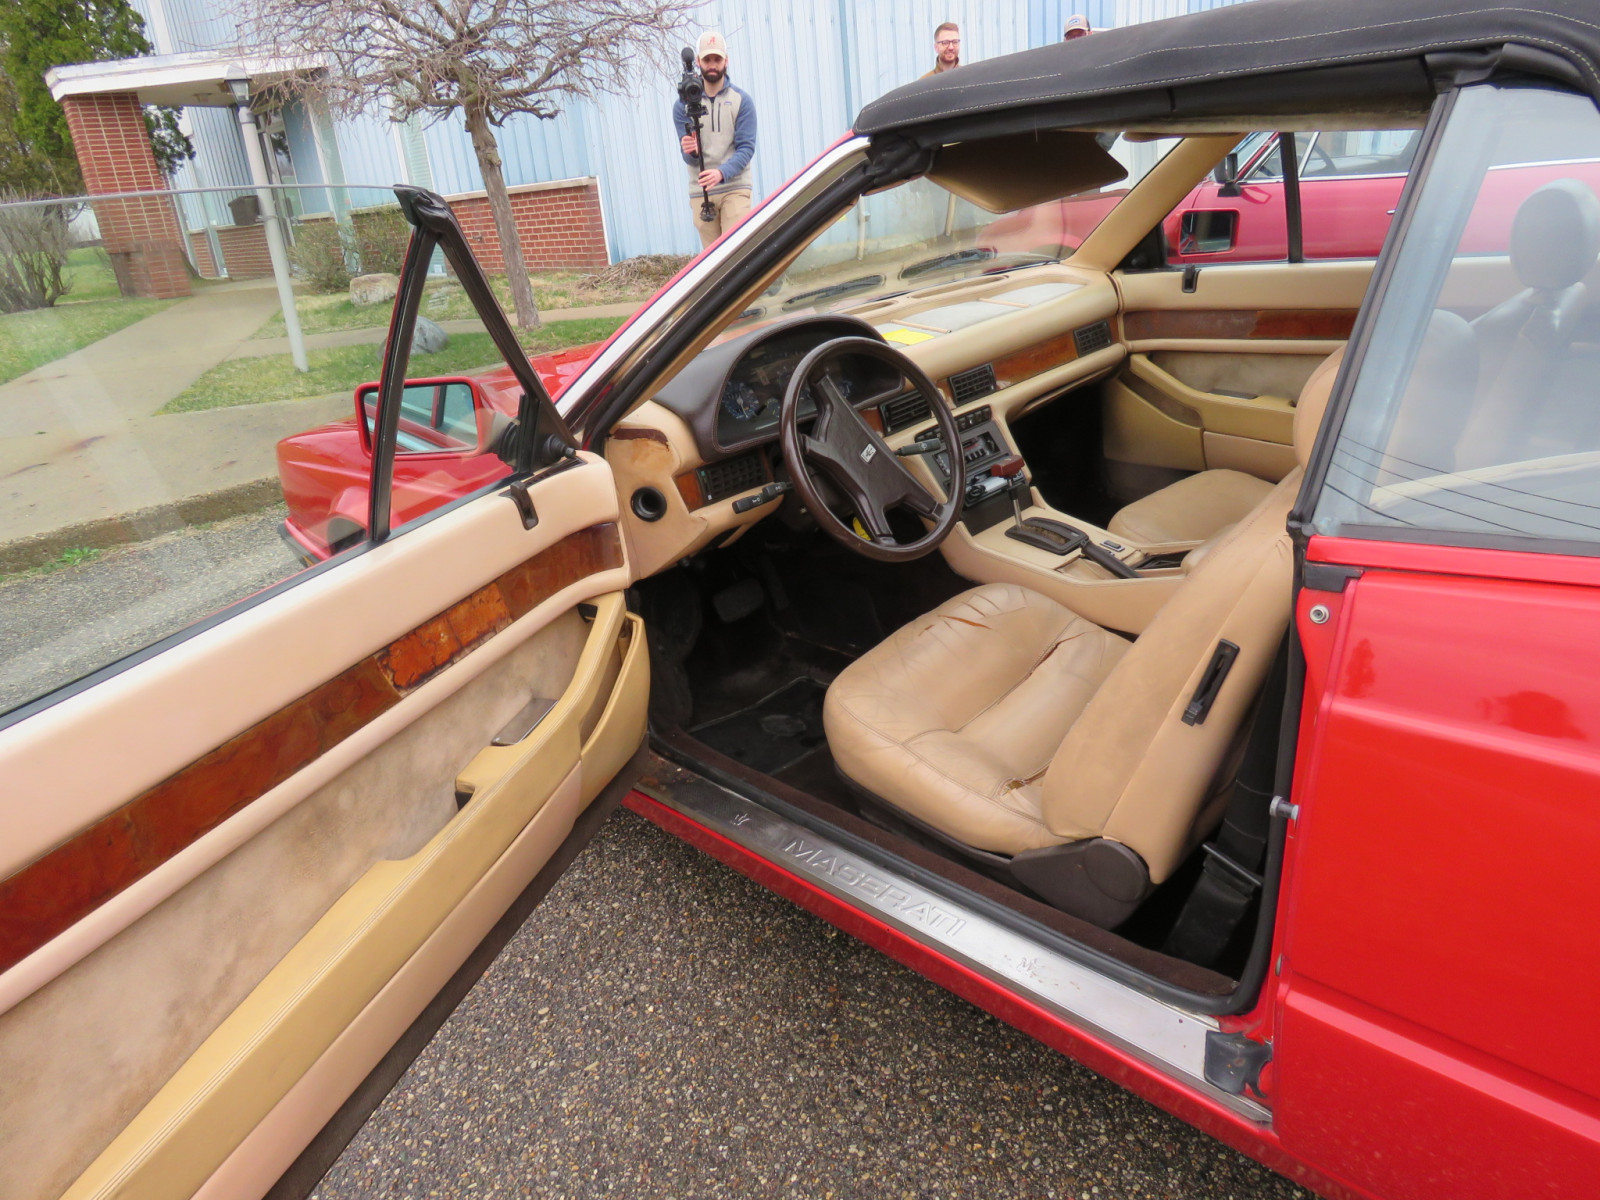 1986 MaserattiB1 Turbo Convertible - Image 8